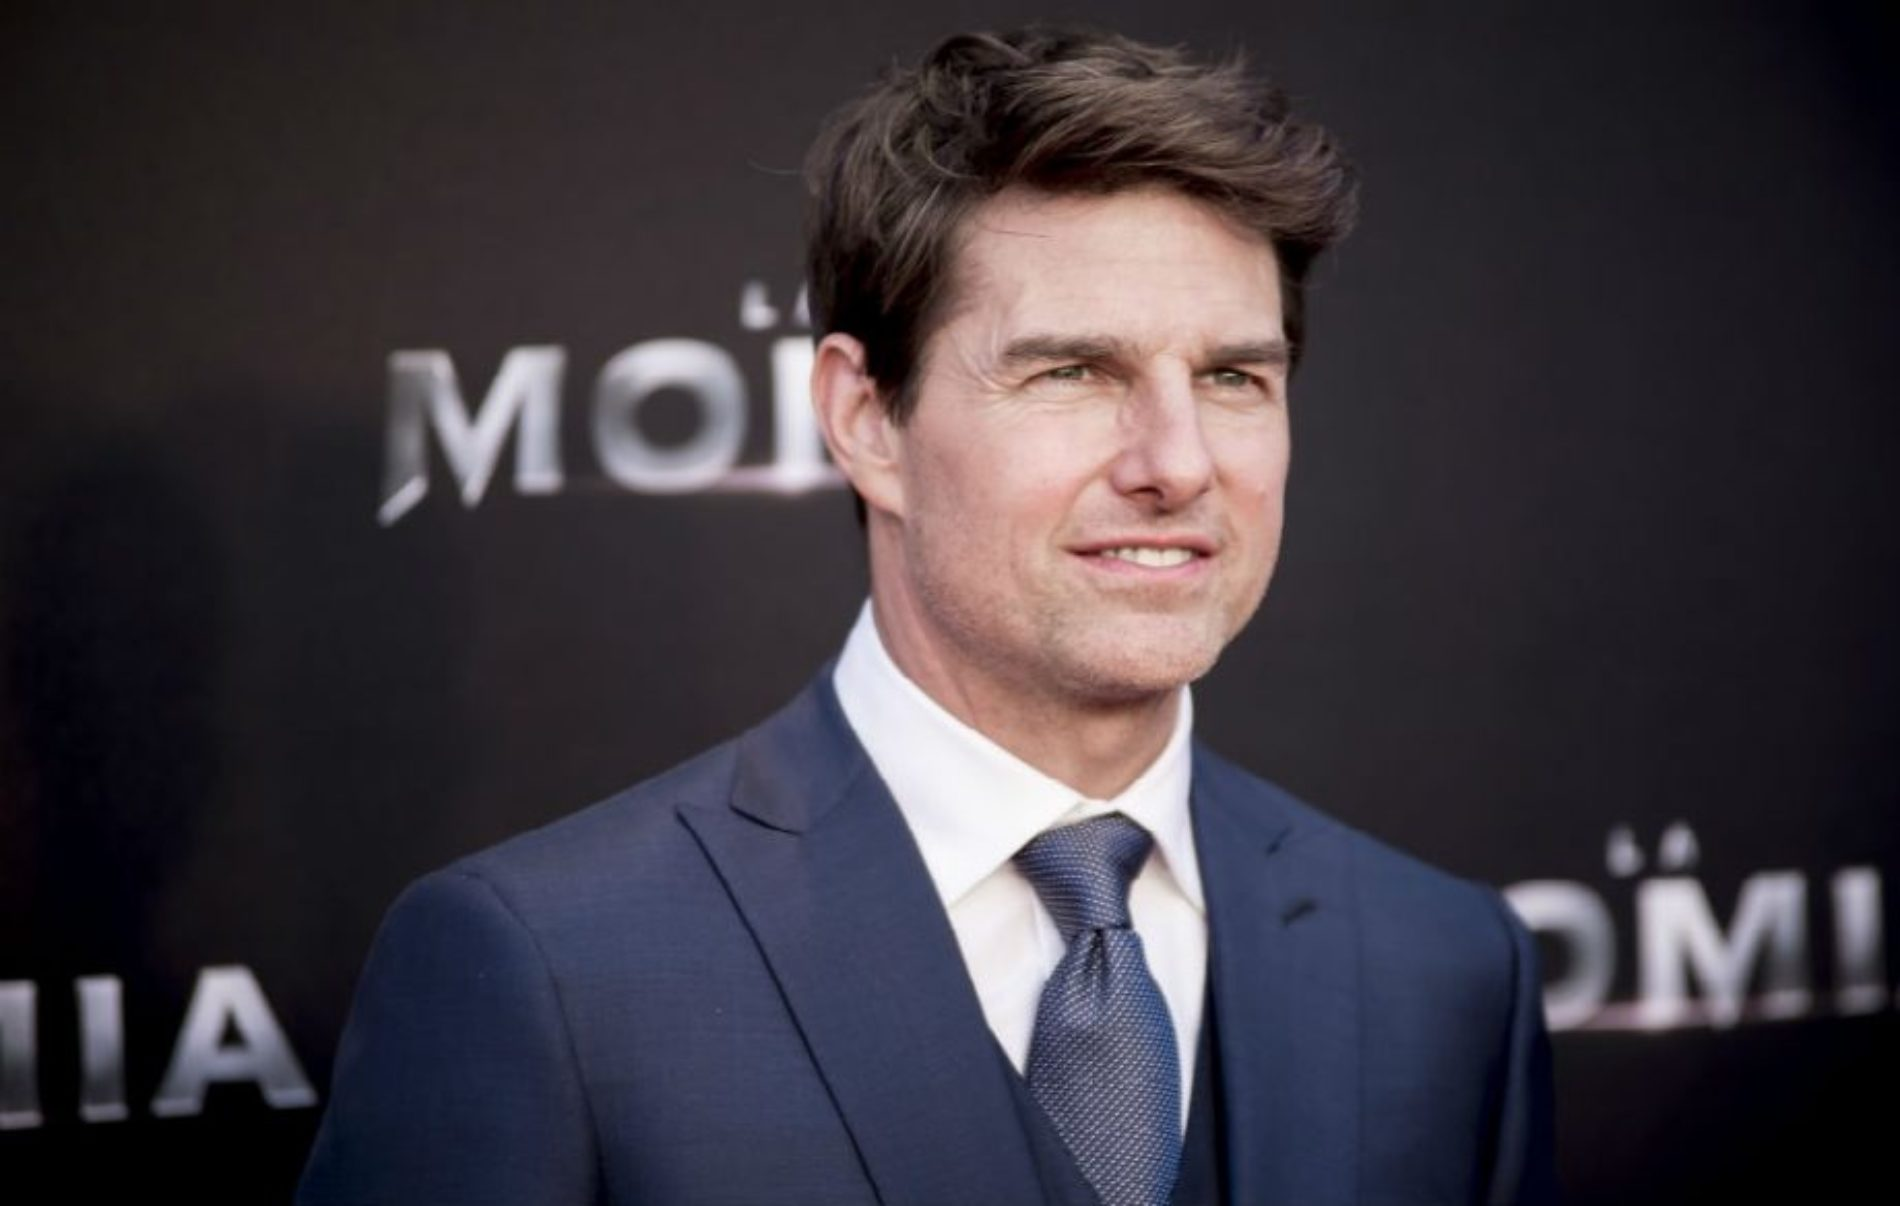 """Tom Cruise Is Not Gay."" Mobster's deathbed confession"